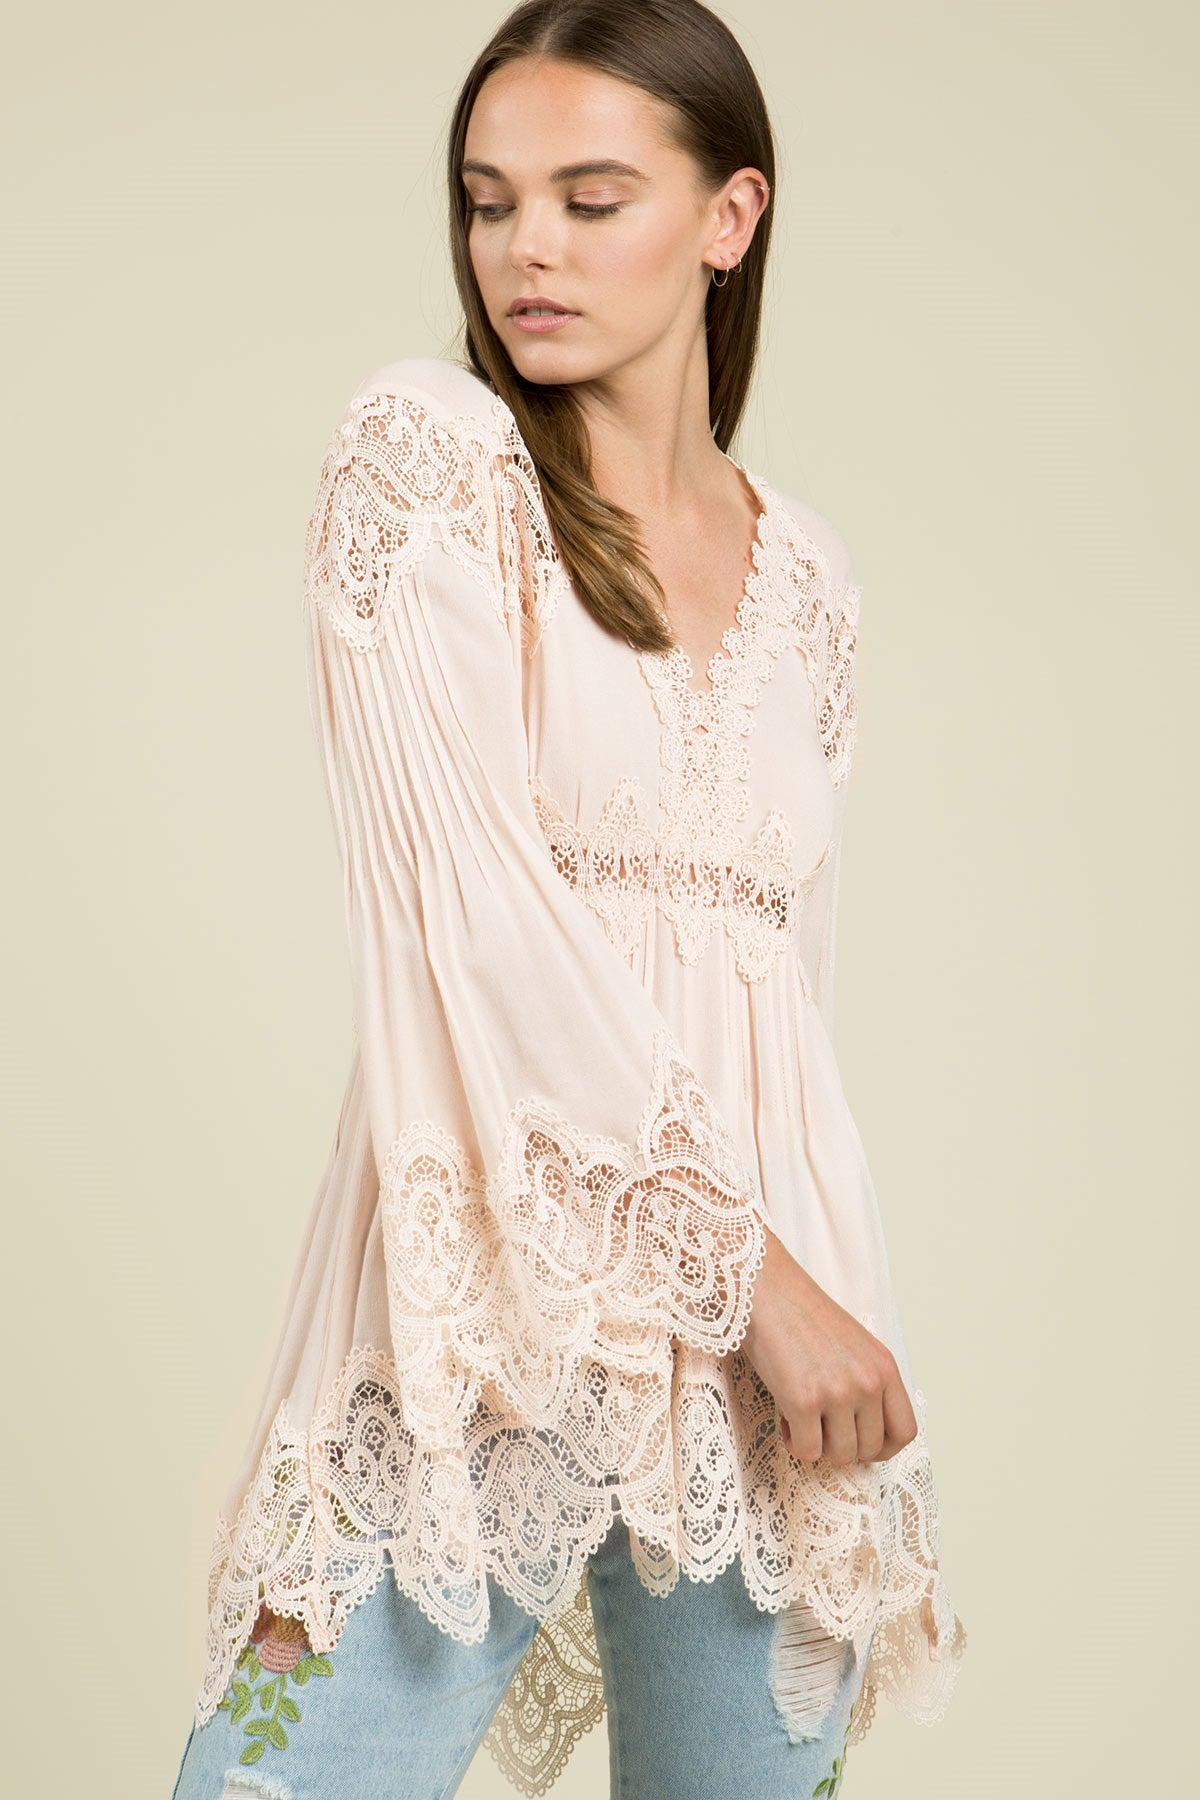 Front view young woman wearing pink empire waist lace trim tunic top - 2